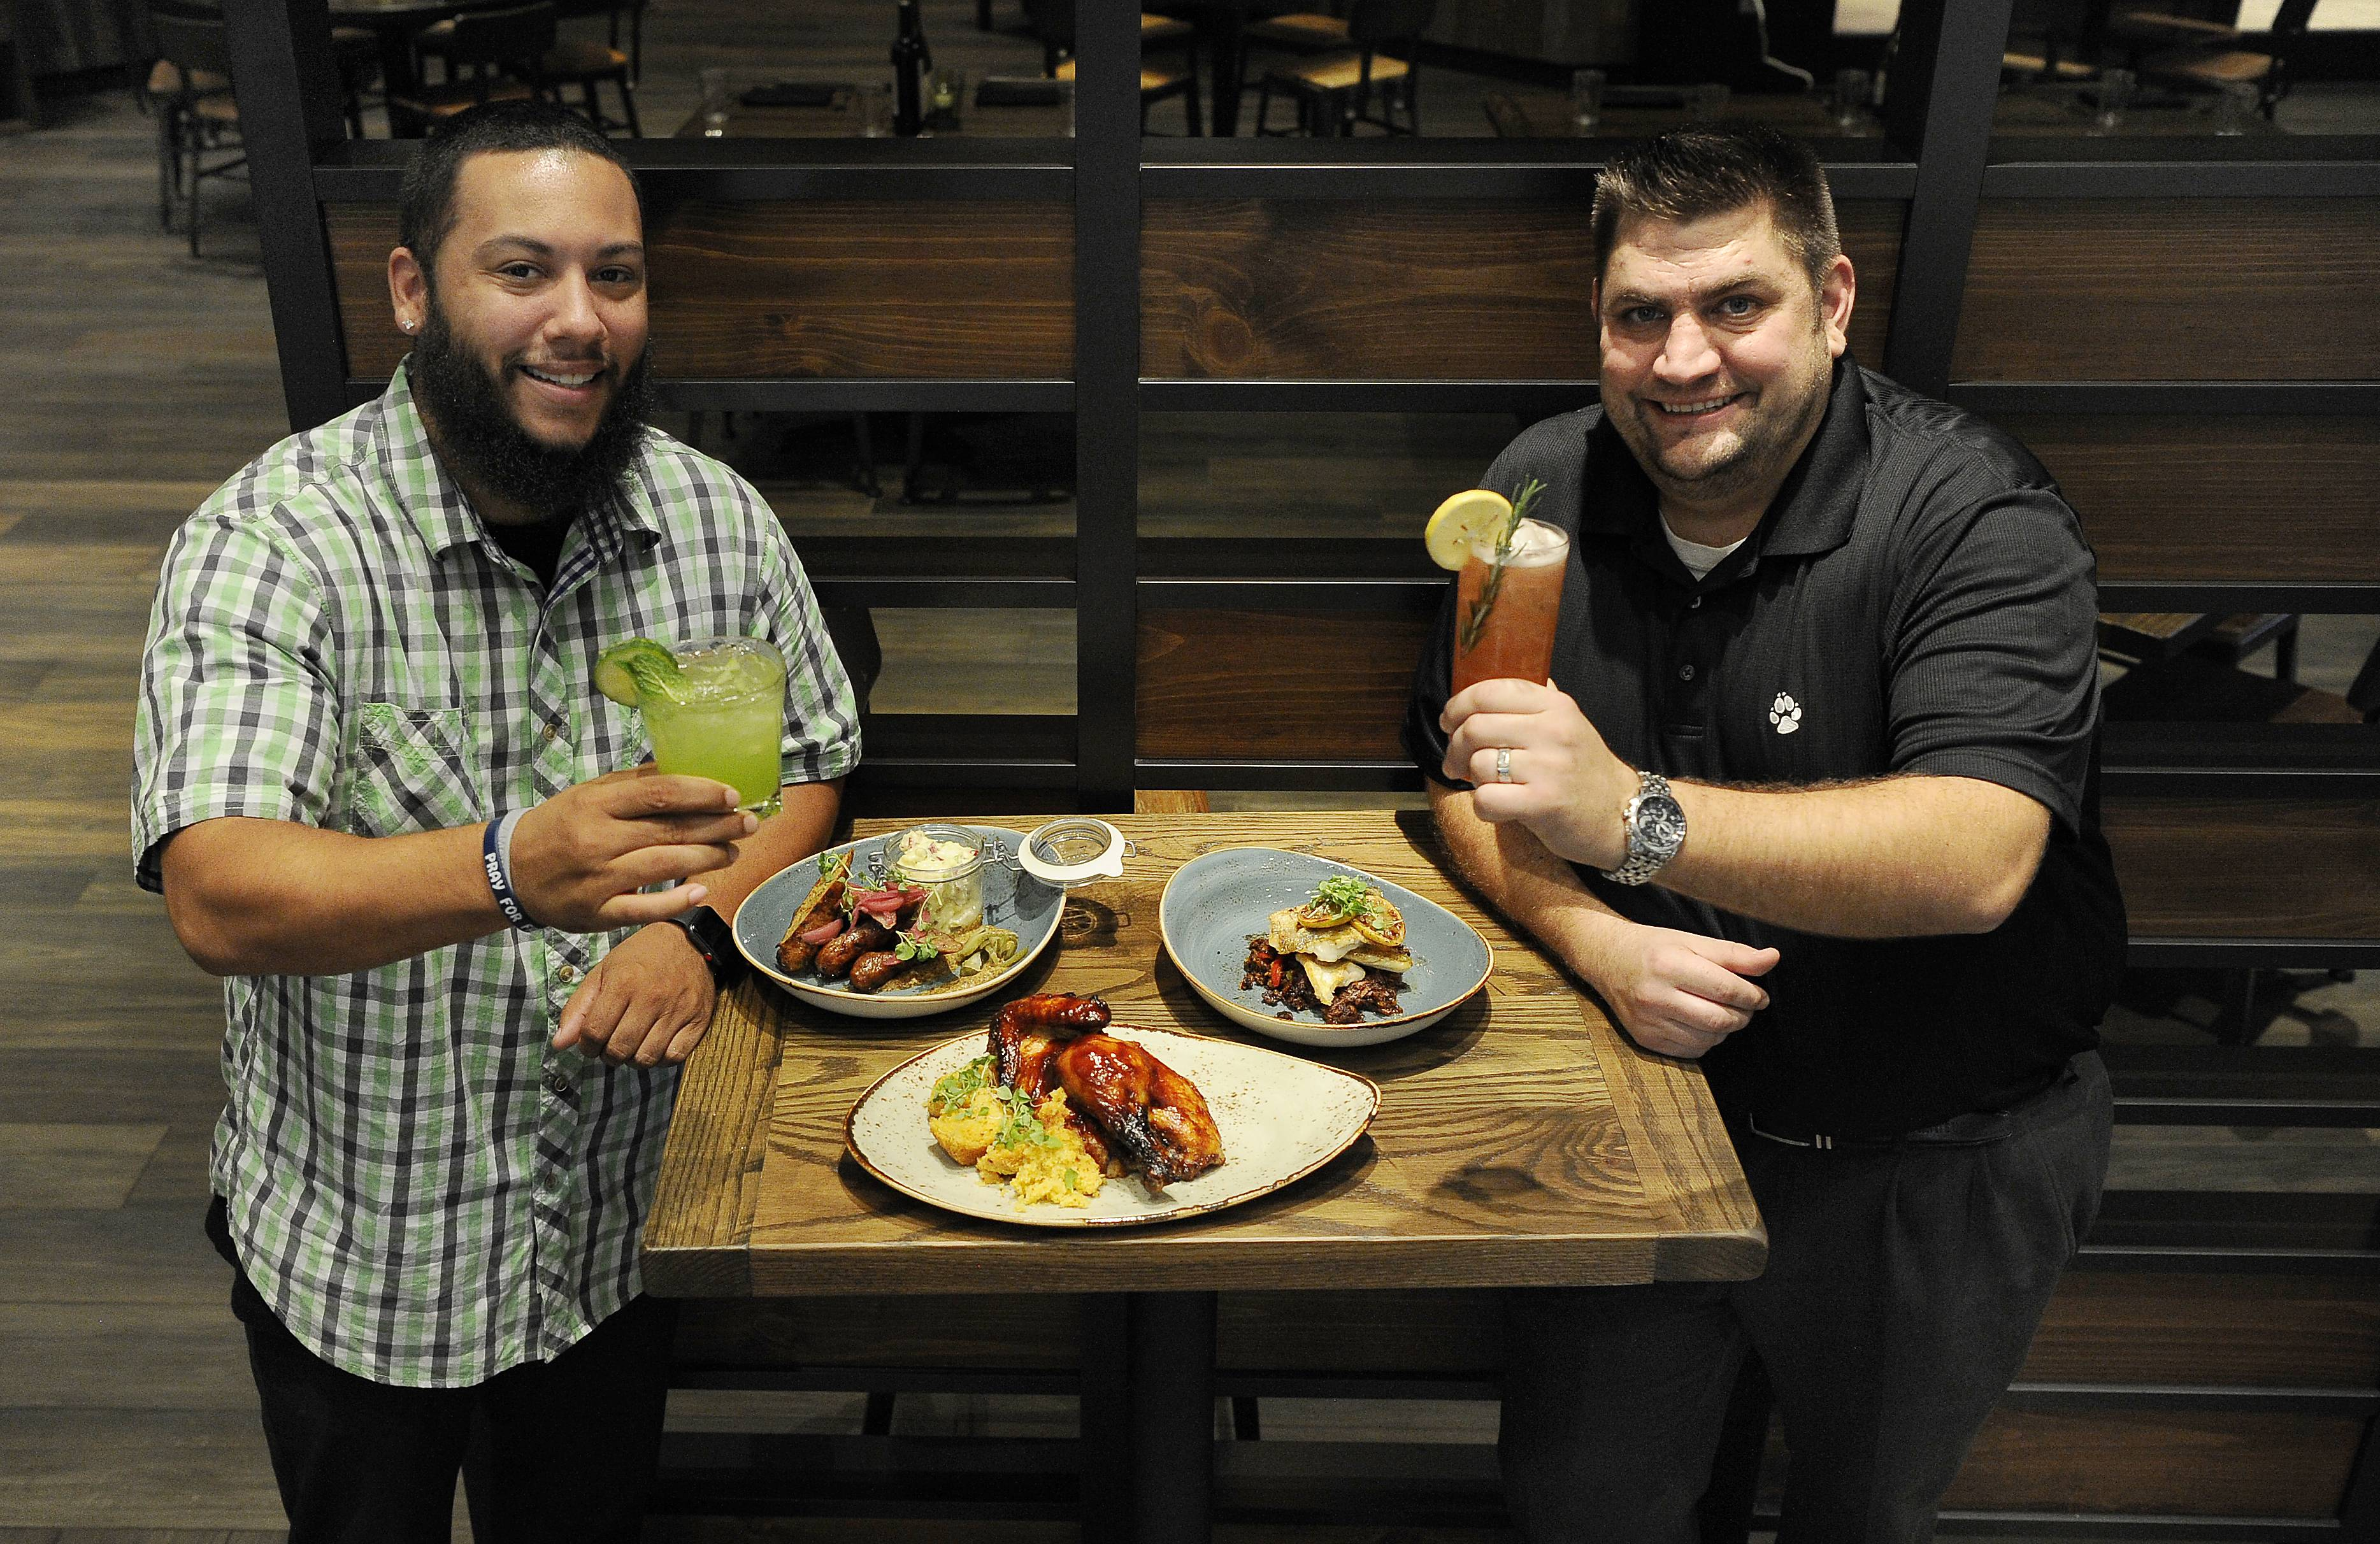 Alejandro Rodriguez, left, bartender and server, and Jake Kitzerow, food and beverage manager, show off some of the hearty dishes at Barnwood in the Great Wolf Lodge in Gurnee.